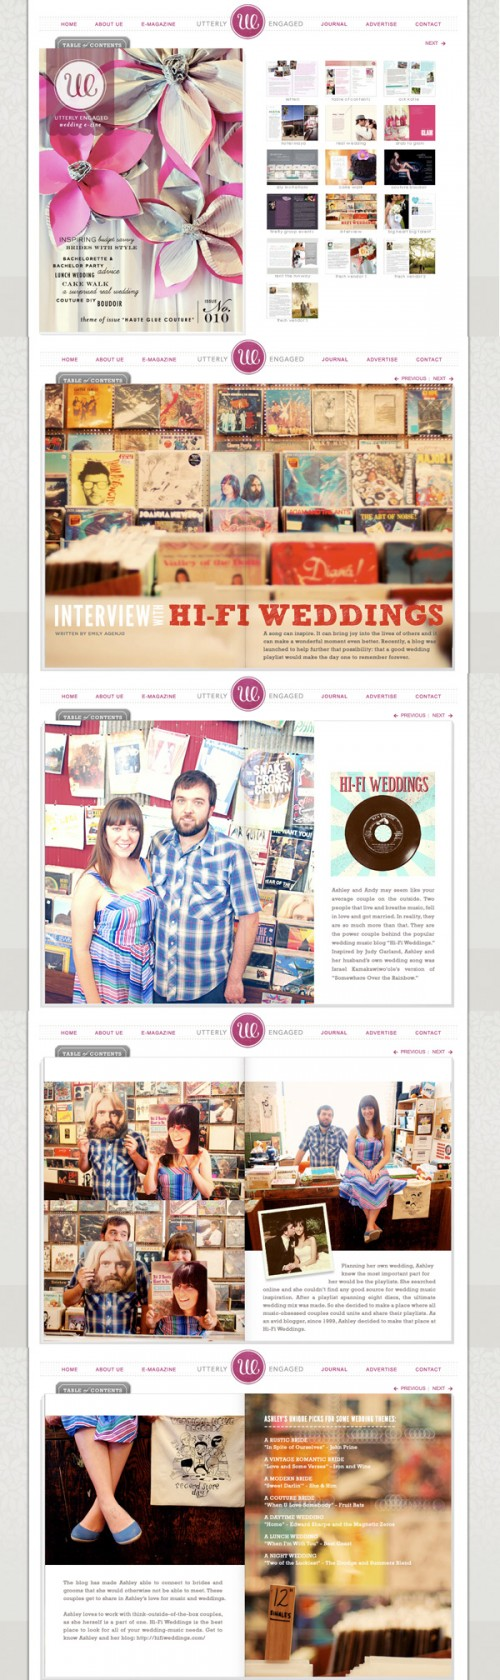 Hi-Fi Weddings on Utterly Engaged